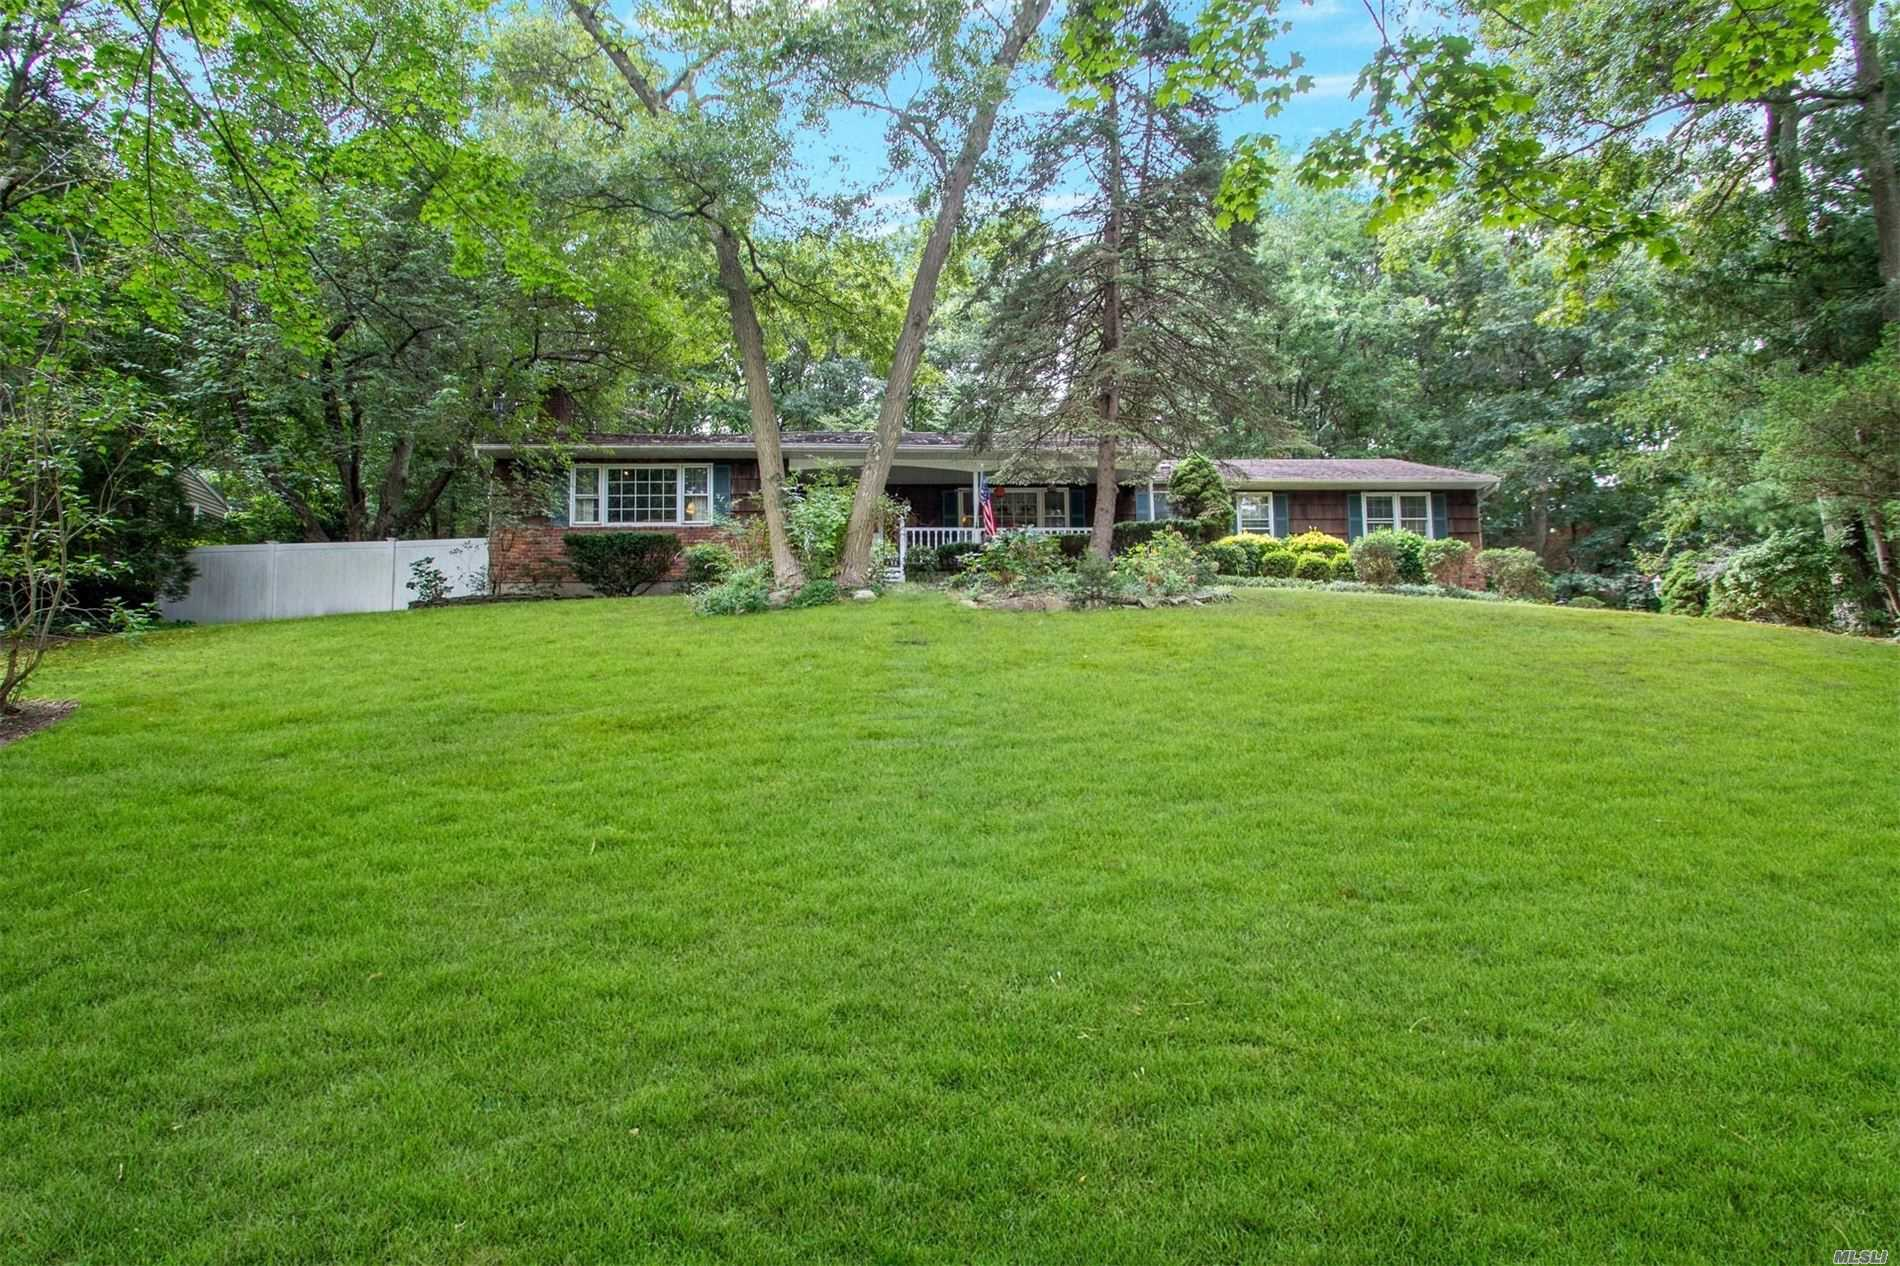 Photo of home for sale at 186 Lower Sheep Past Rd, Setauket NY